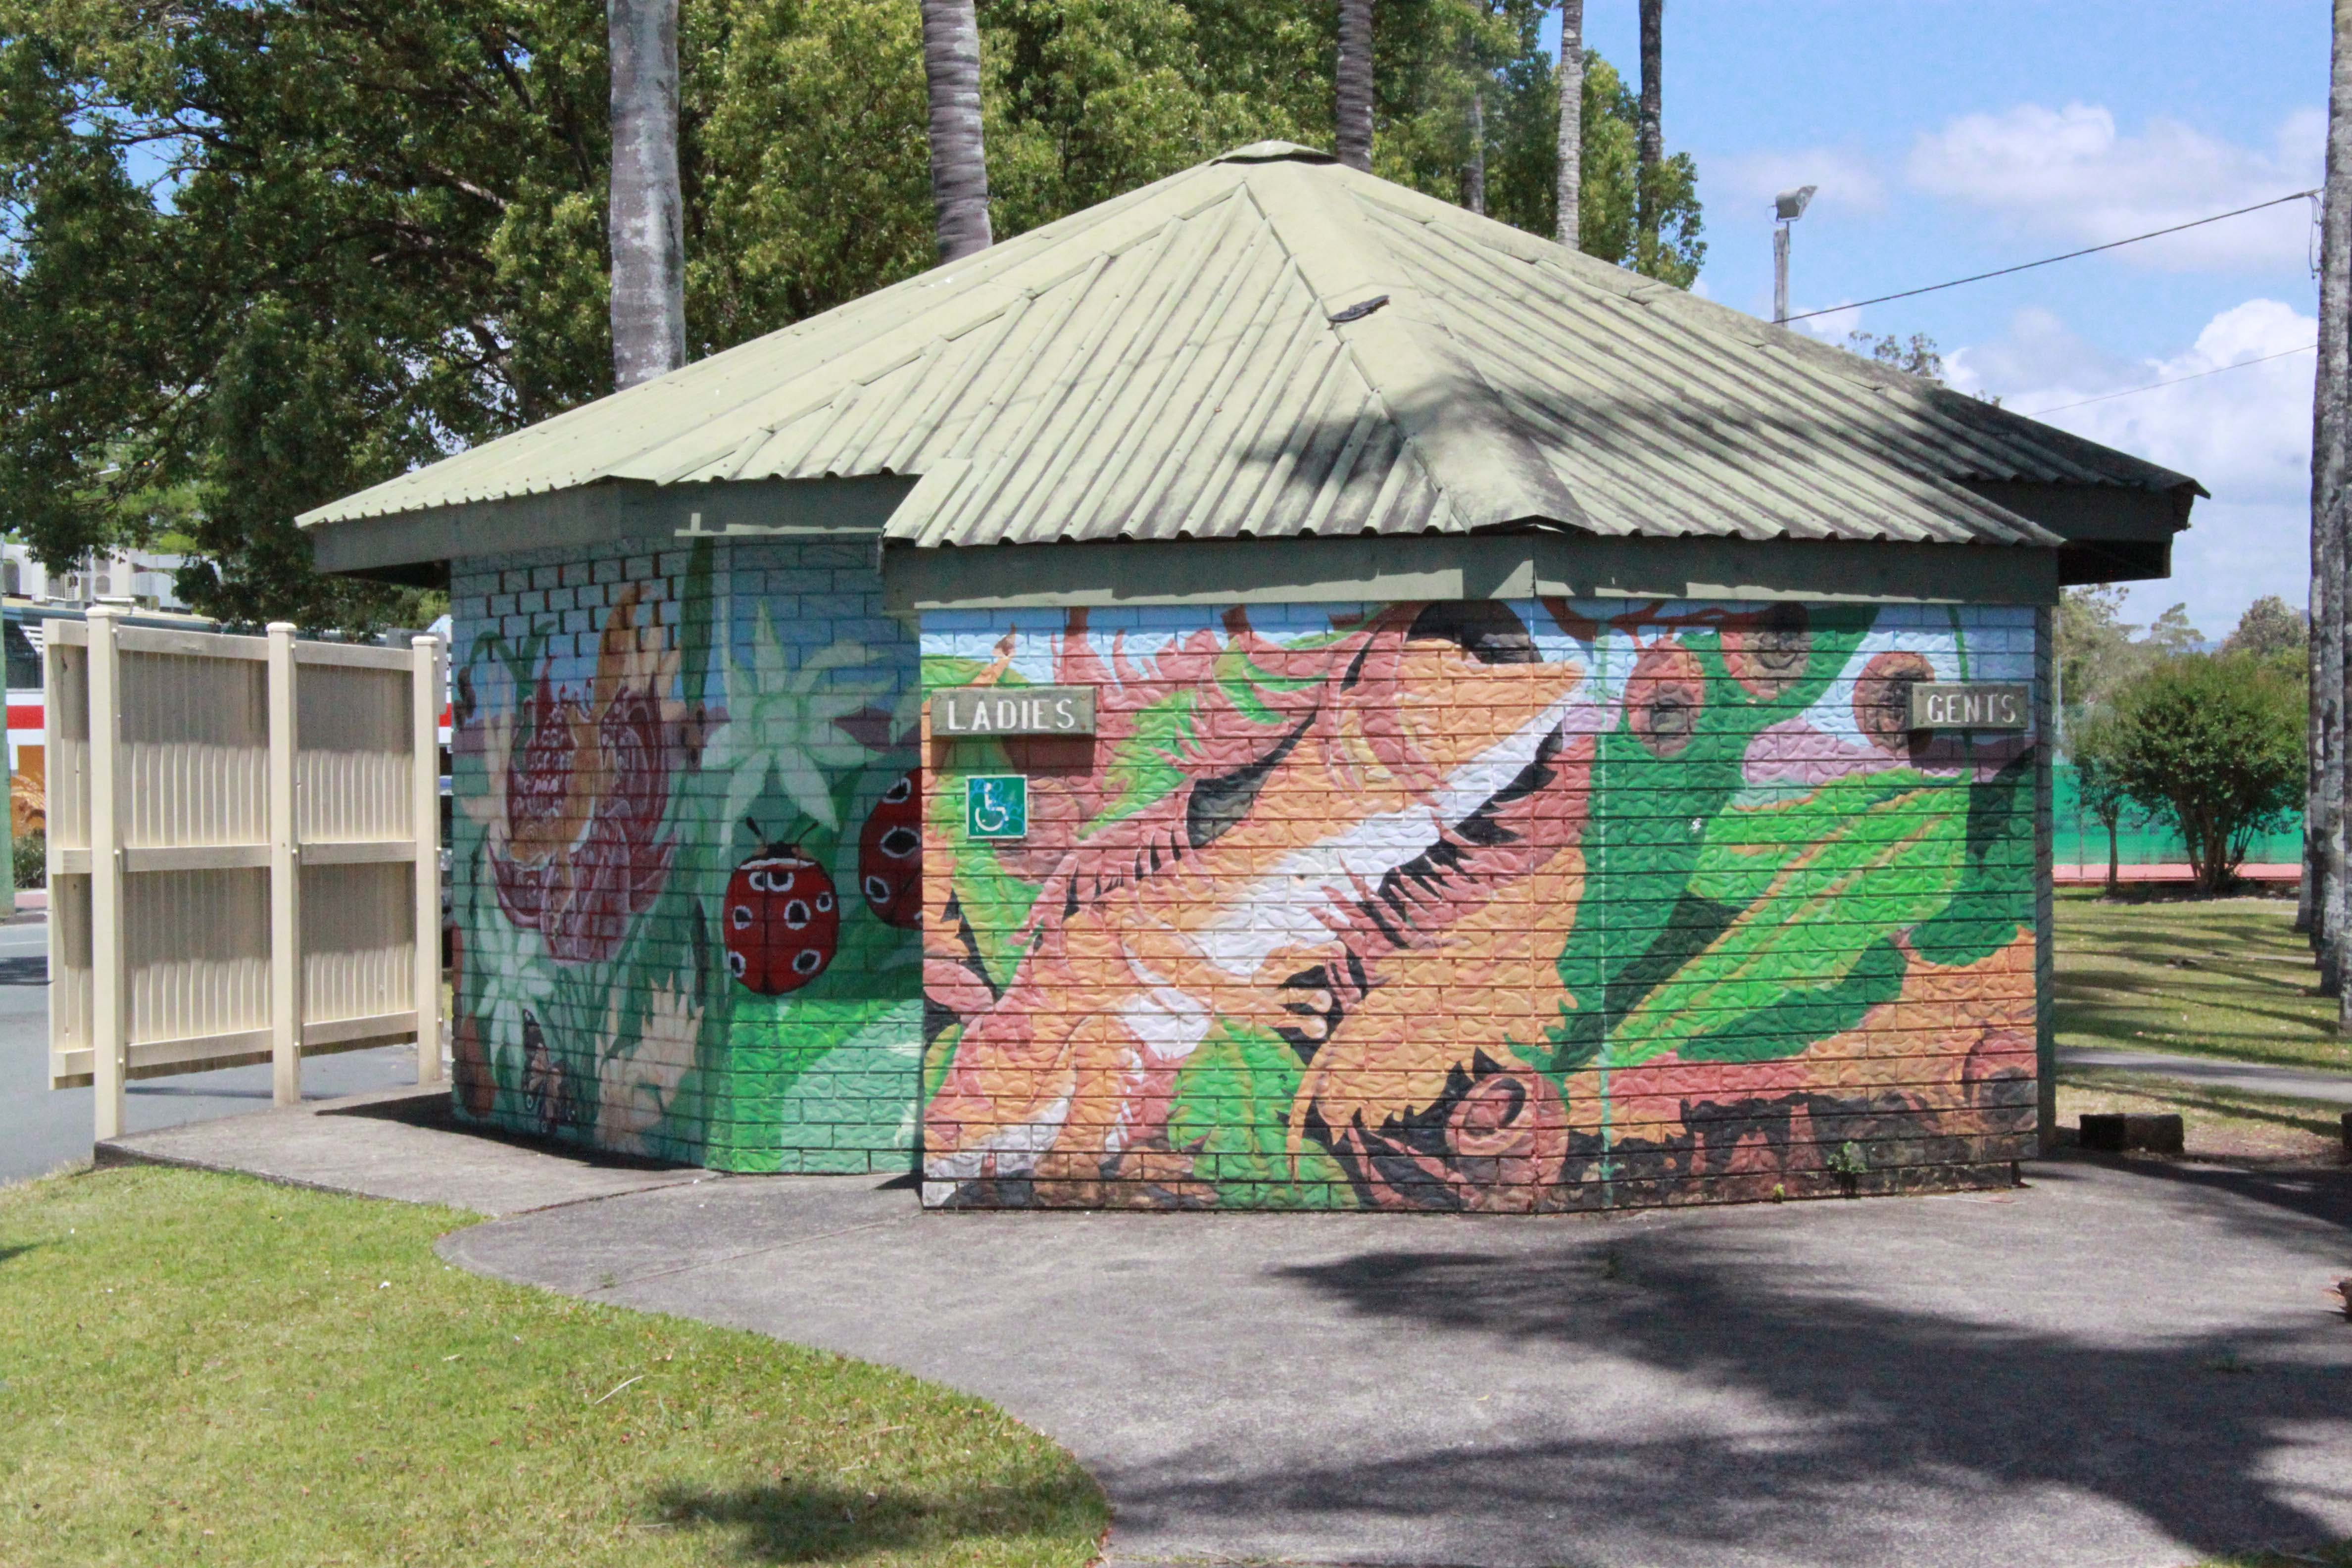 The existing public toilet block (left) has been earmarked to be replaced by a more centralised and improved toilet facility.